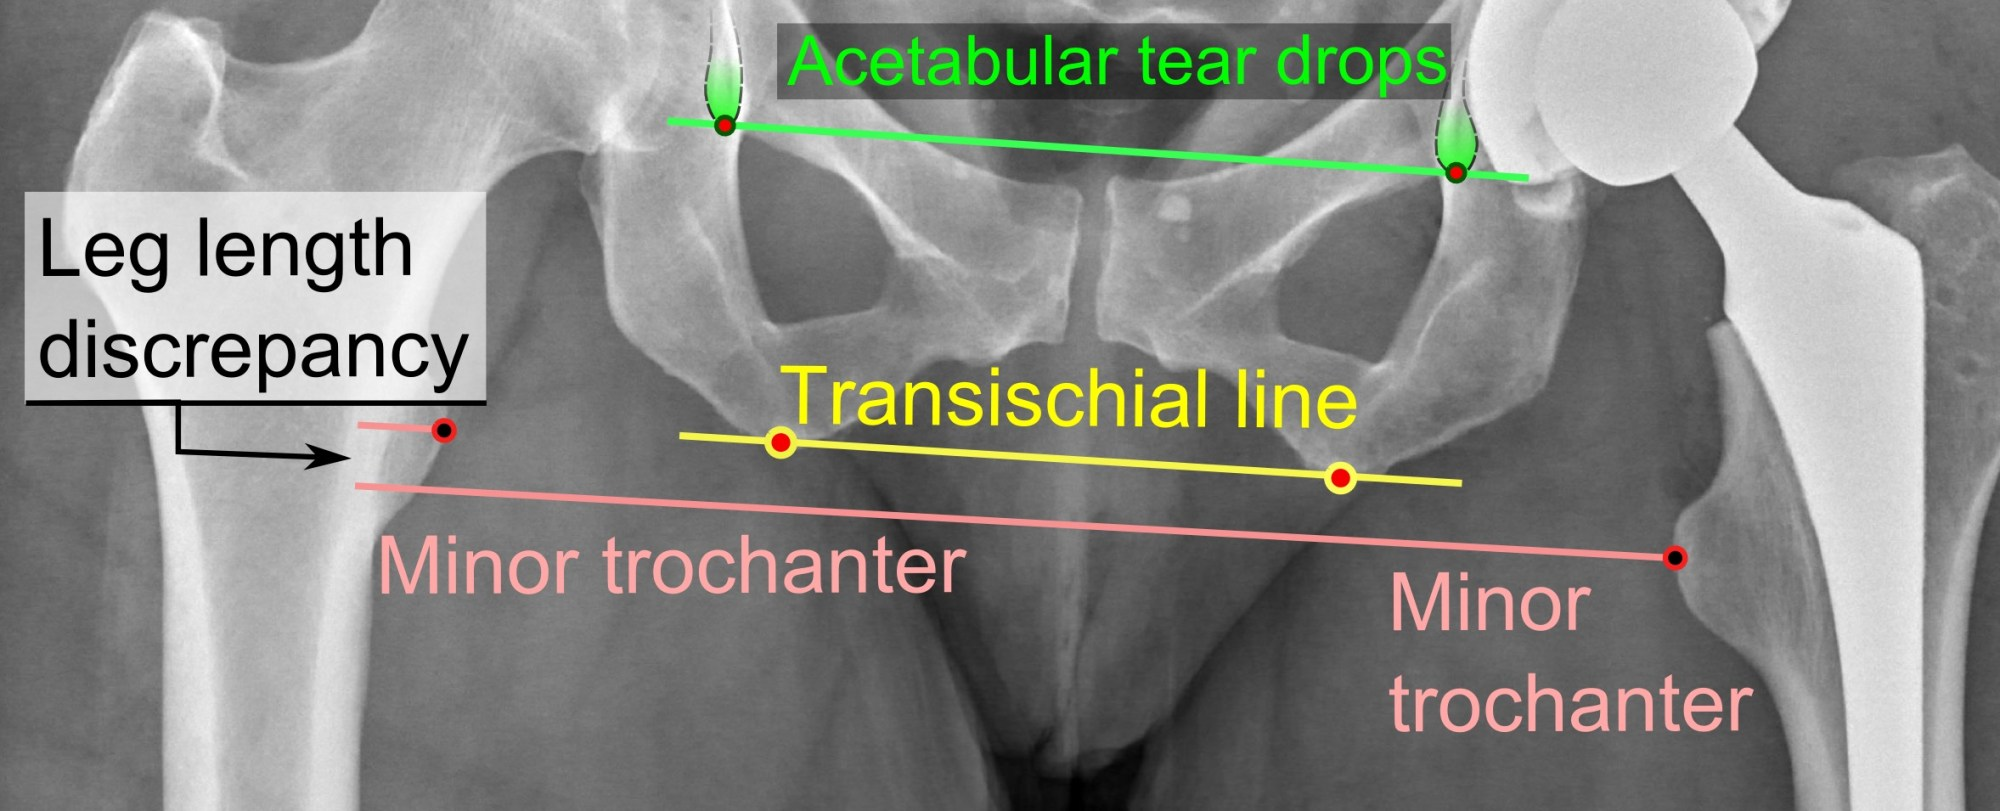 hight resolution of leg length discrepancy after hip replacement is calculated as the vertical distance between the middle of the minor trochanters using the acetabular tear